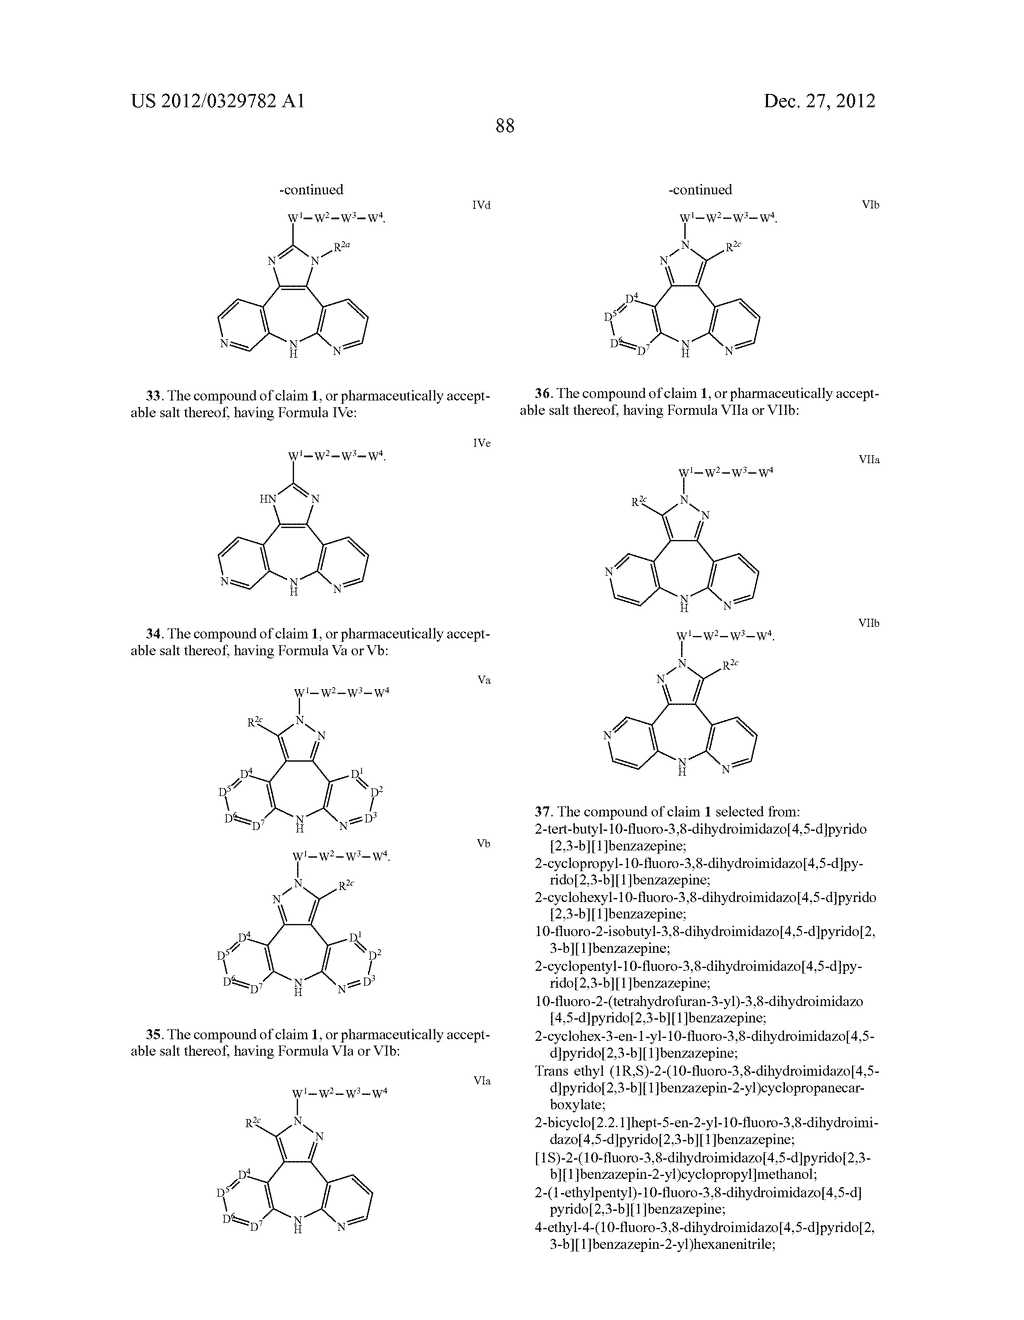 AZEPINE INHIBITORS OF JANUS KINASES - diagram, schematic, and image 89